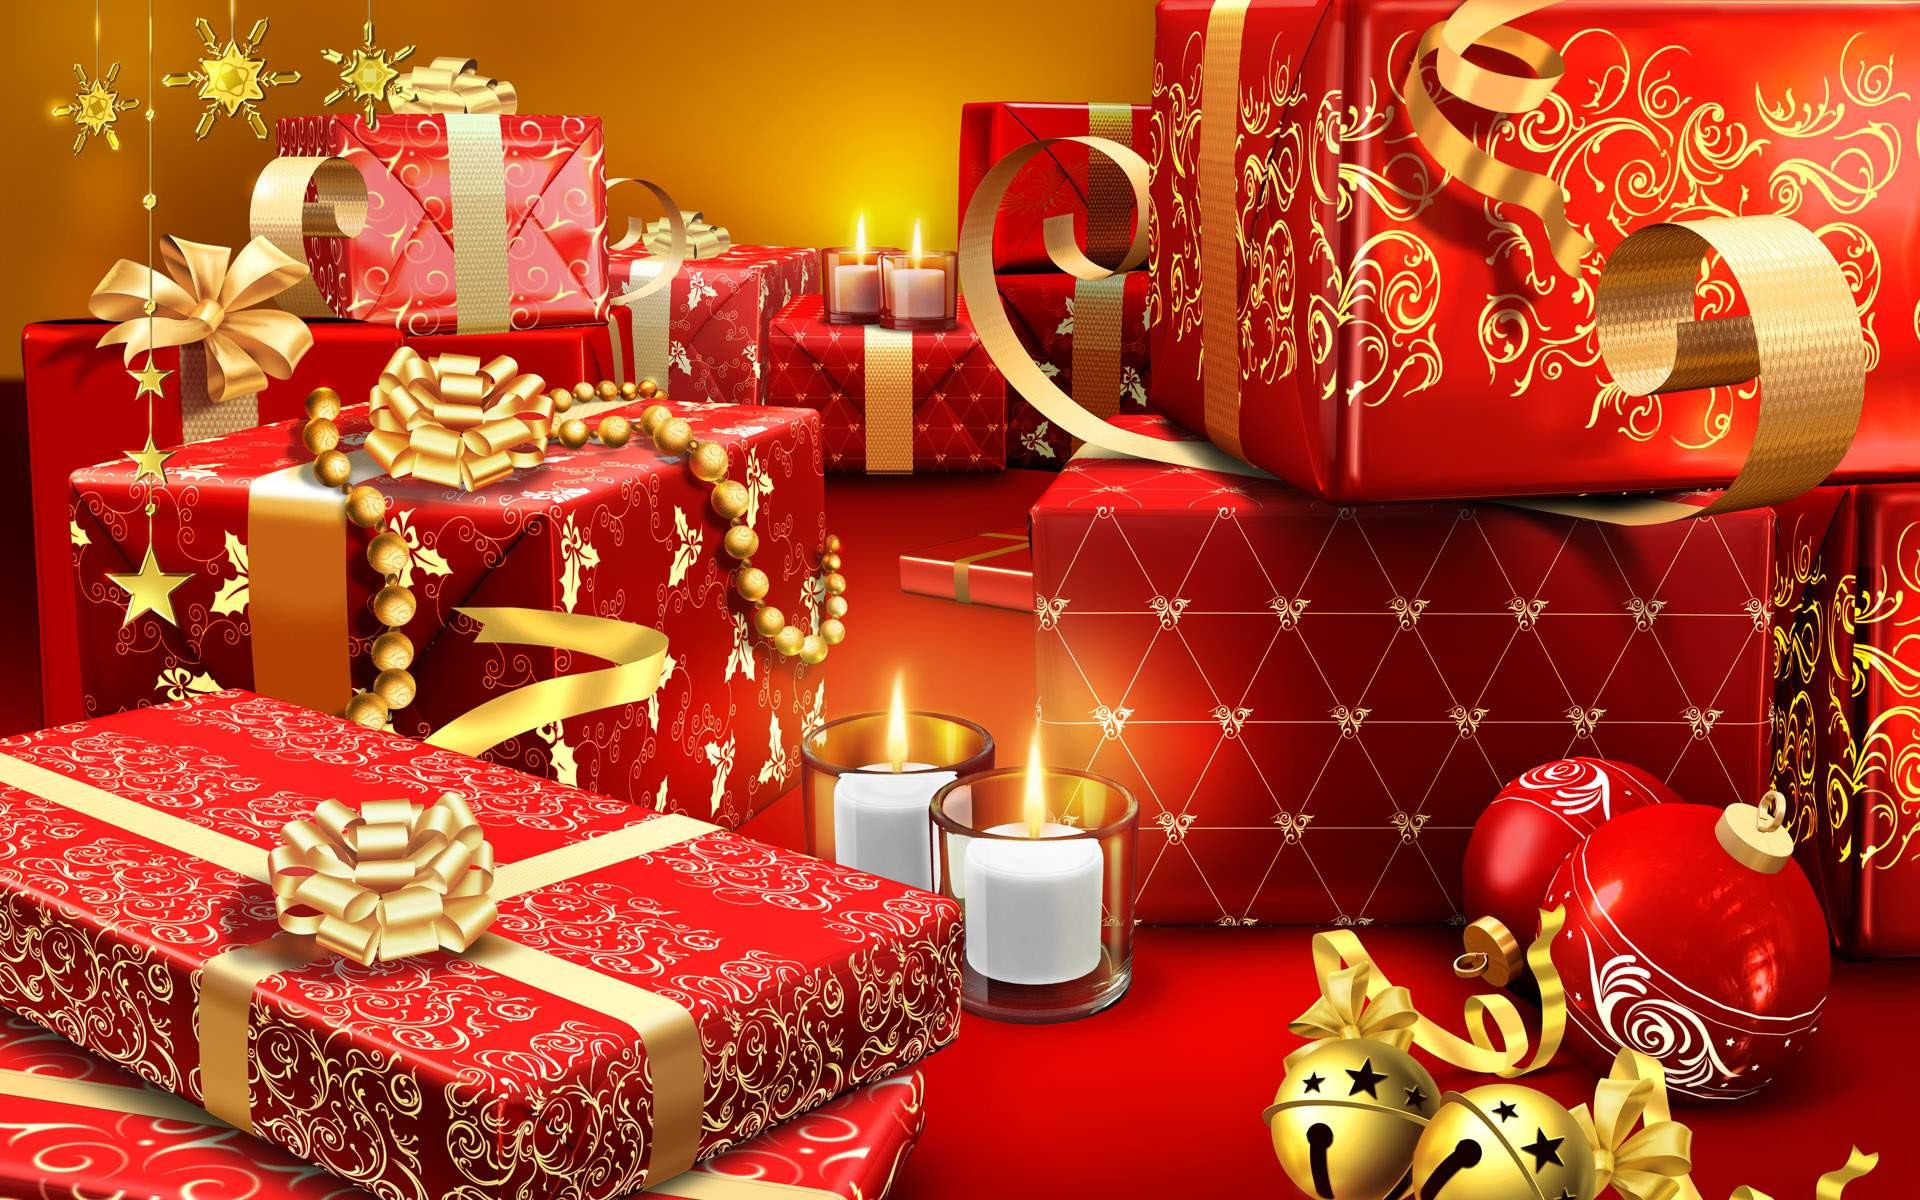 Wallpapers For Desktop Christmas 50 Images